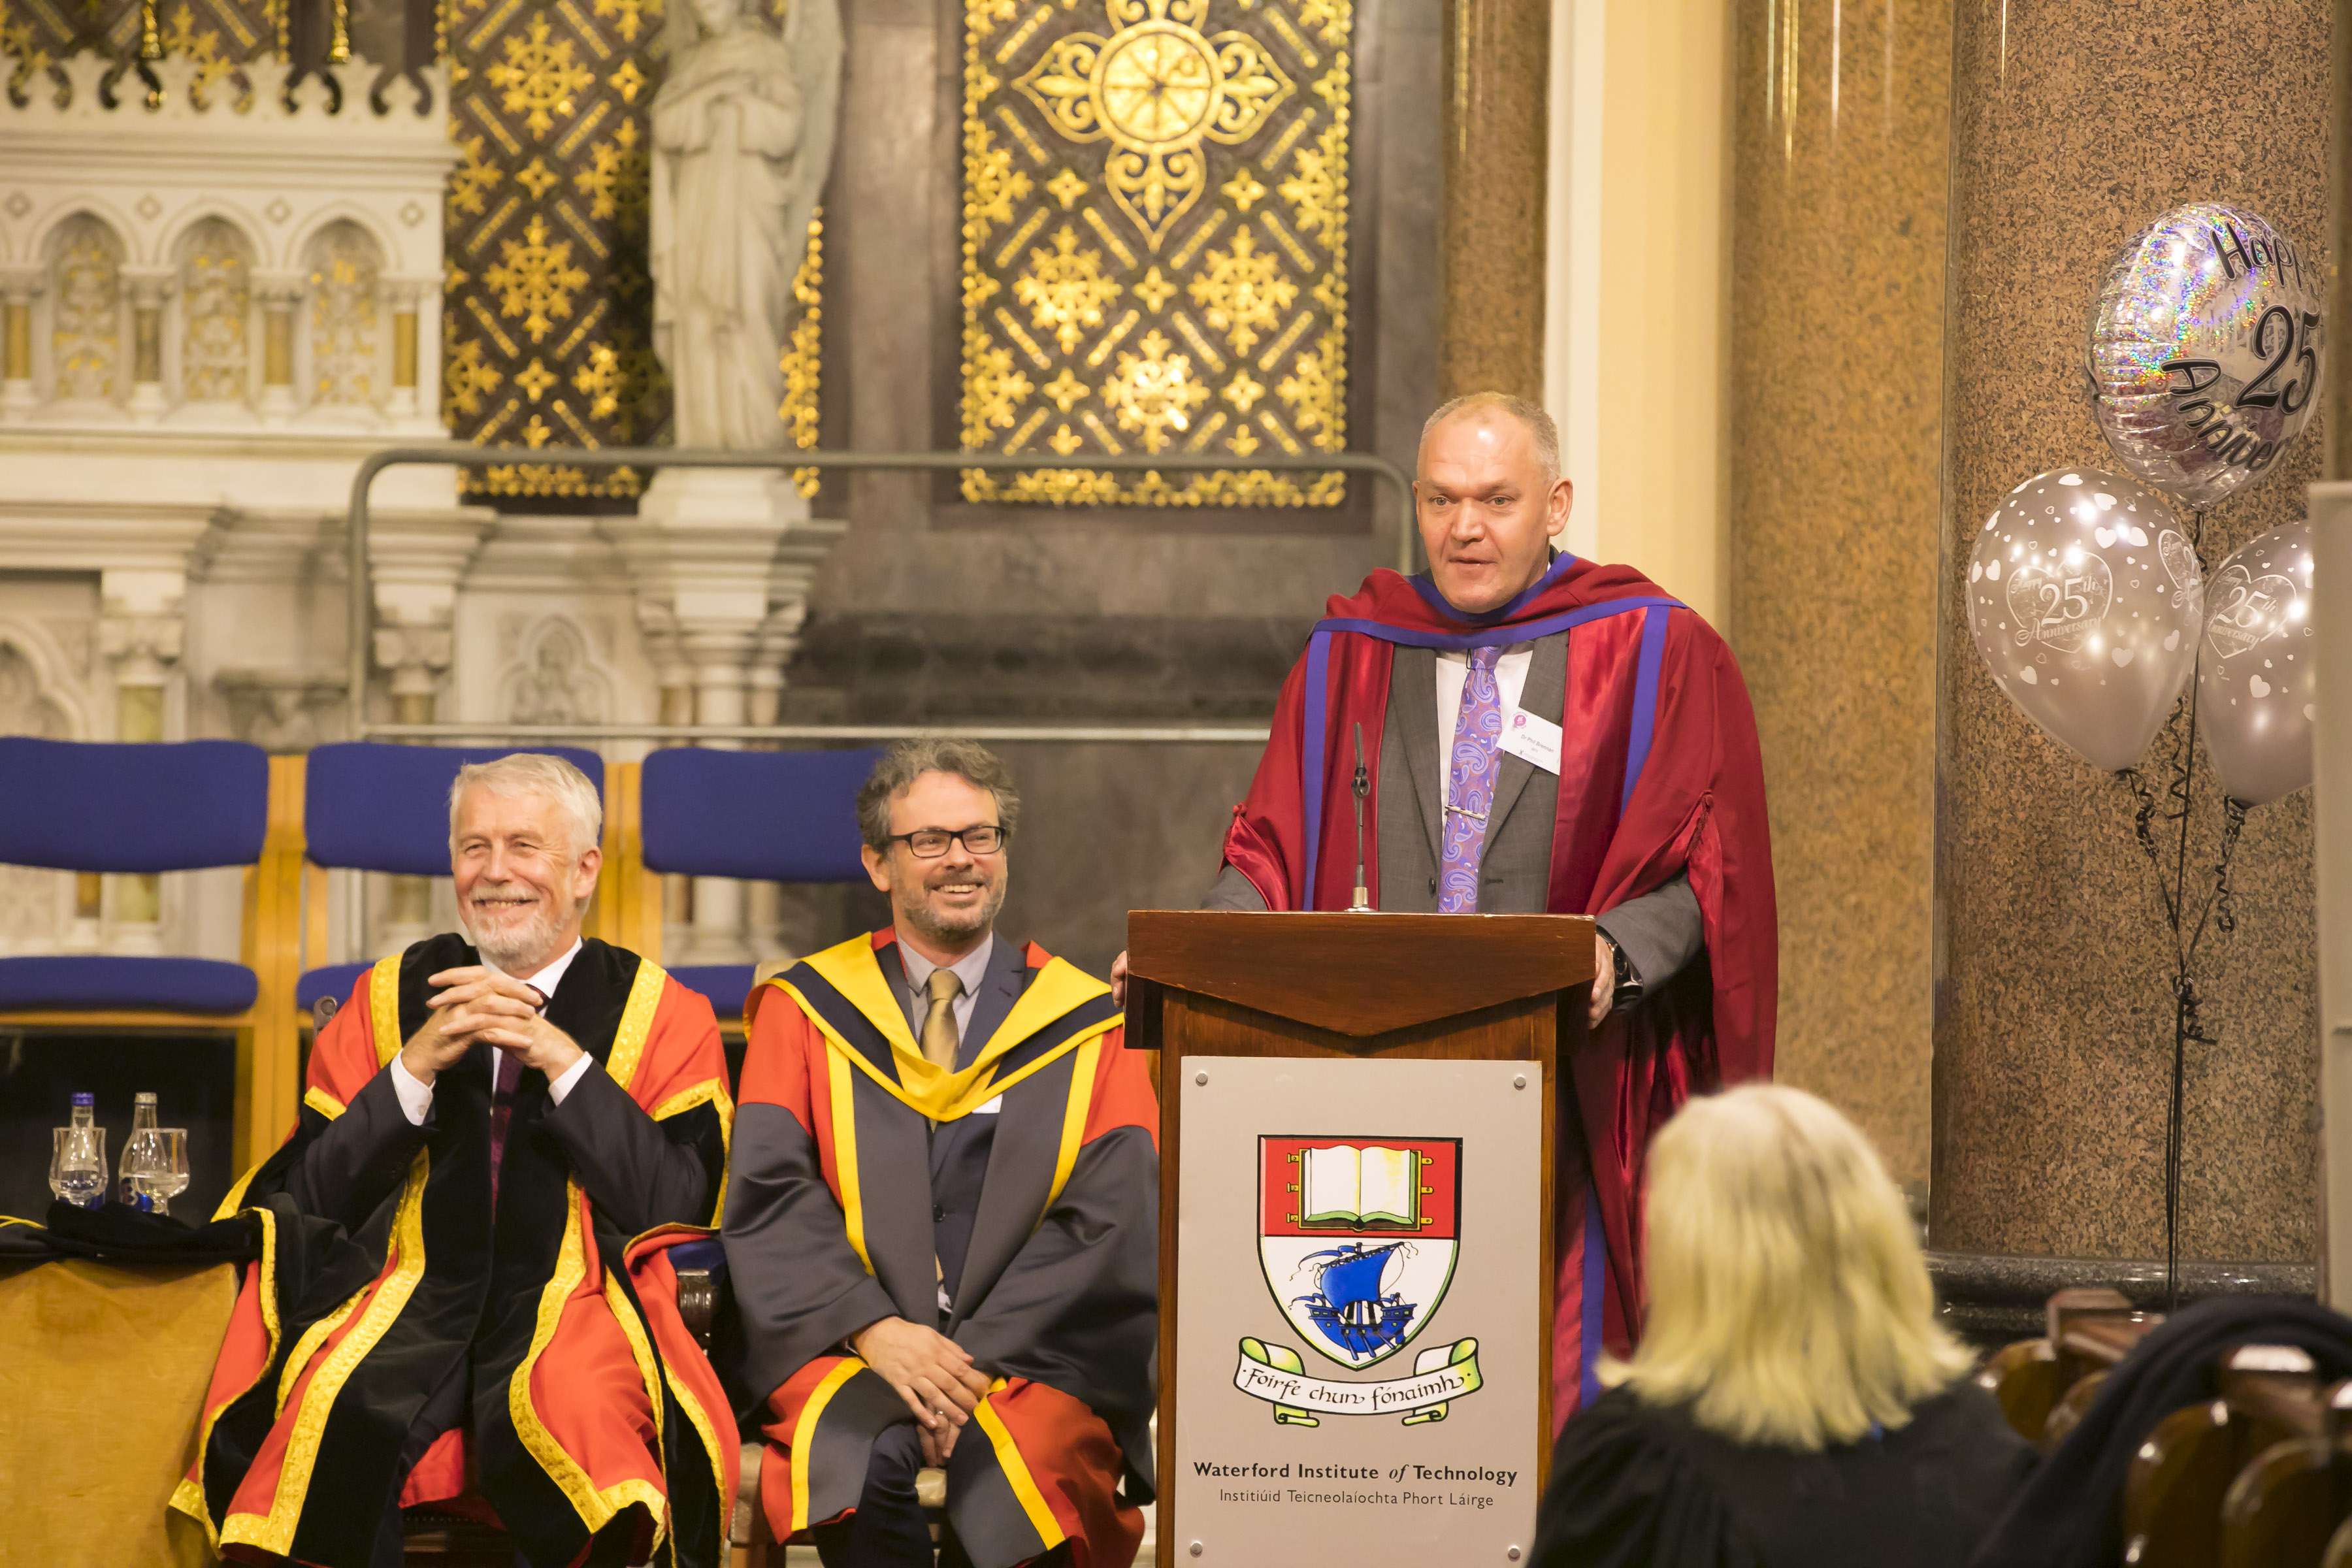 Dr Phil Brennan was invited to deliver one of the speeches at an event held to mark the WIT 25th anniversary of the first PhD award. Picture: Patrick Browne